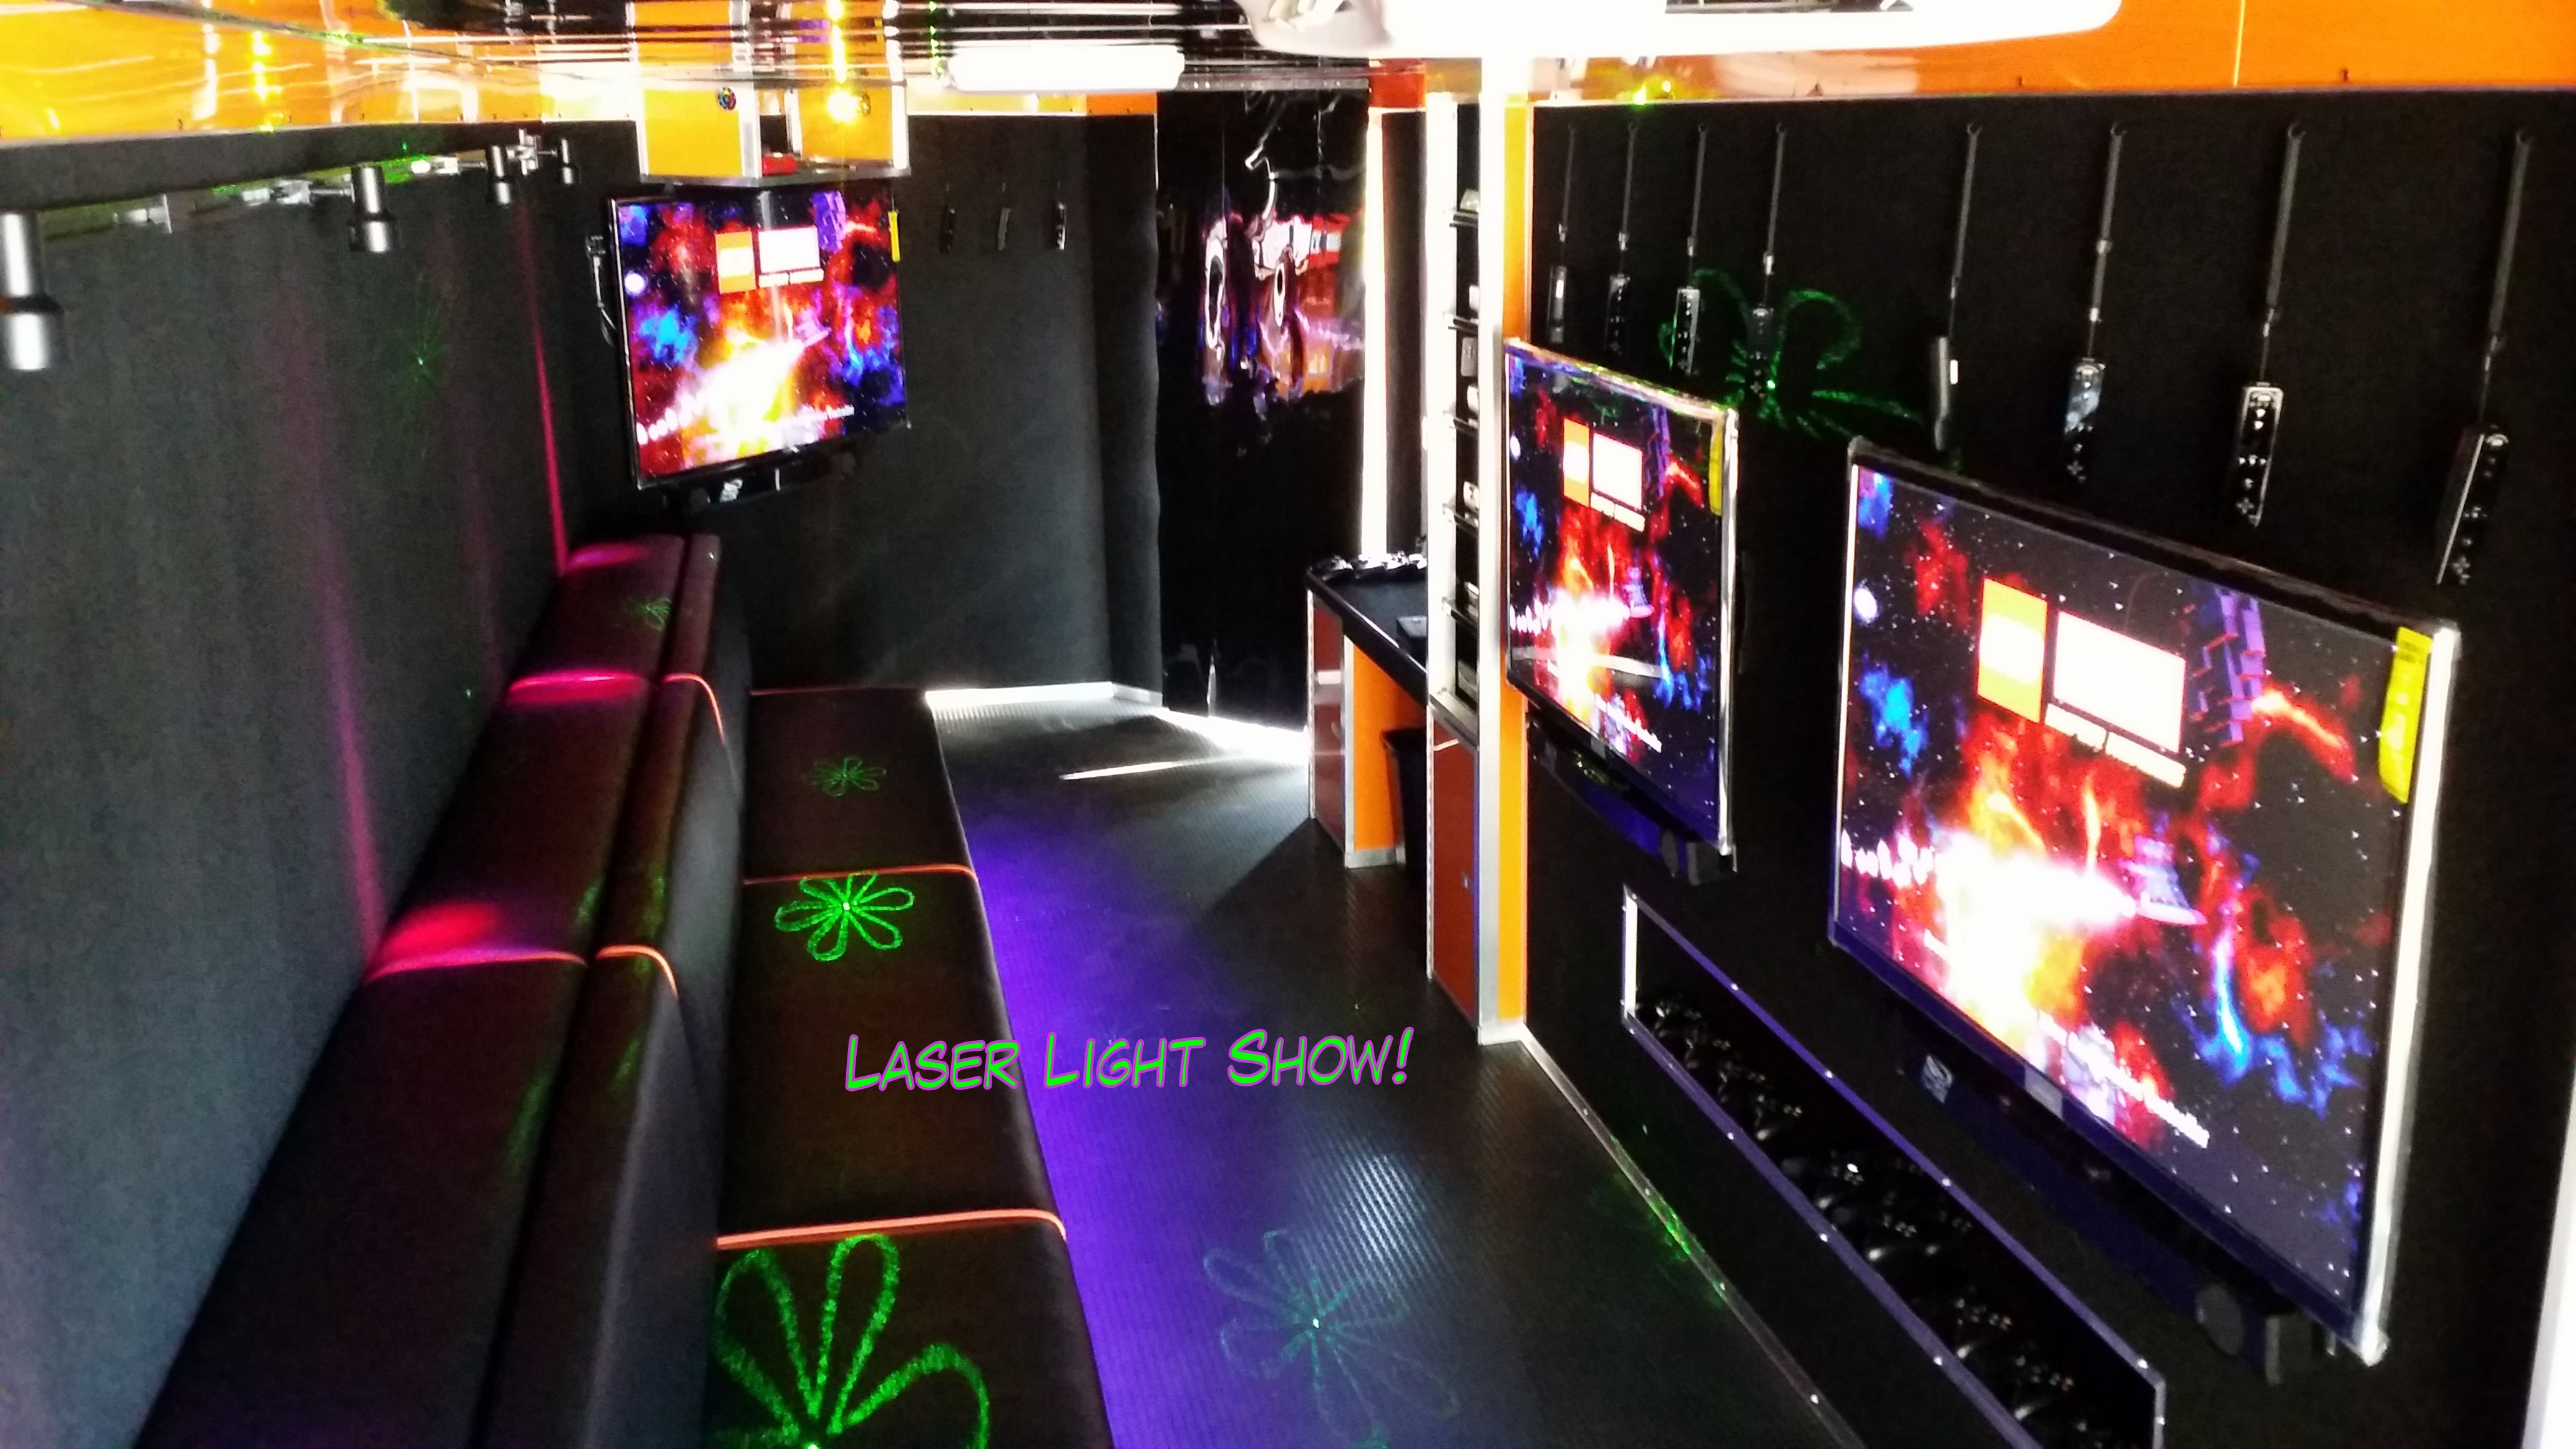 We have been installing the Laser Light Show since 2012! Buy from the leader in fresh ideas and innovation.